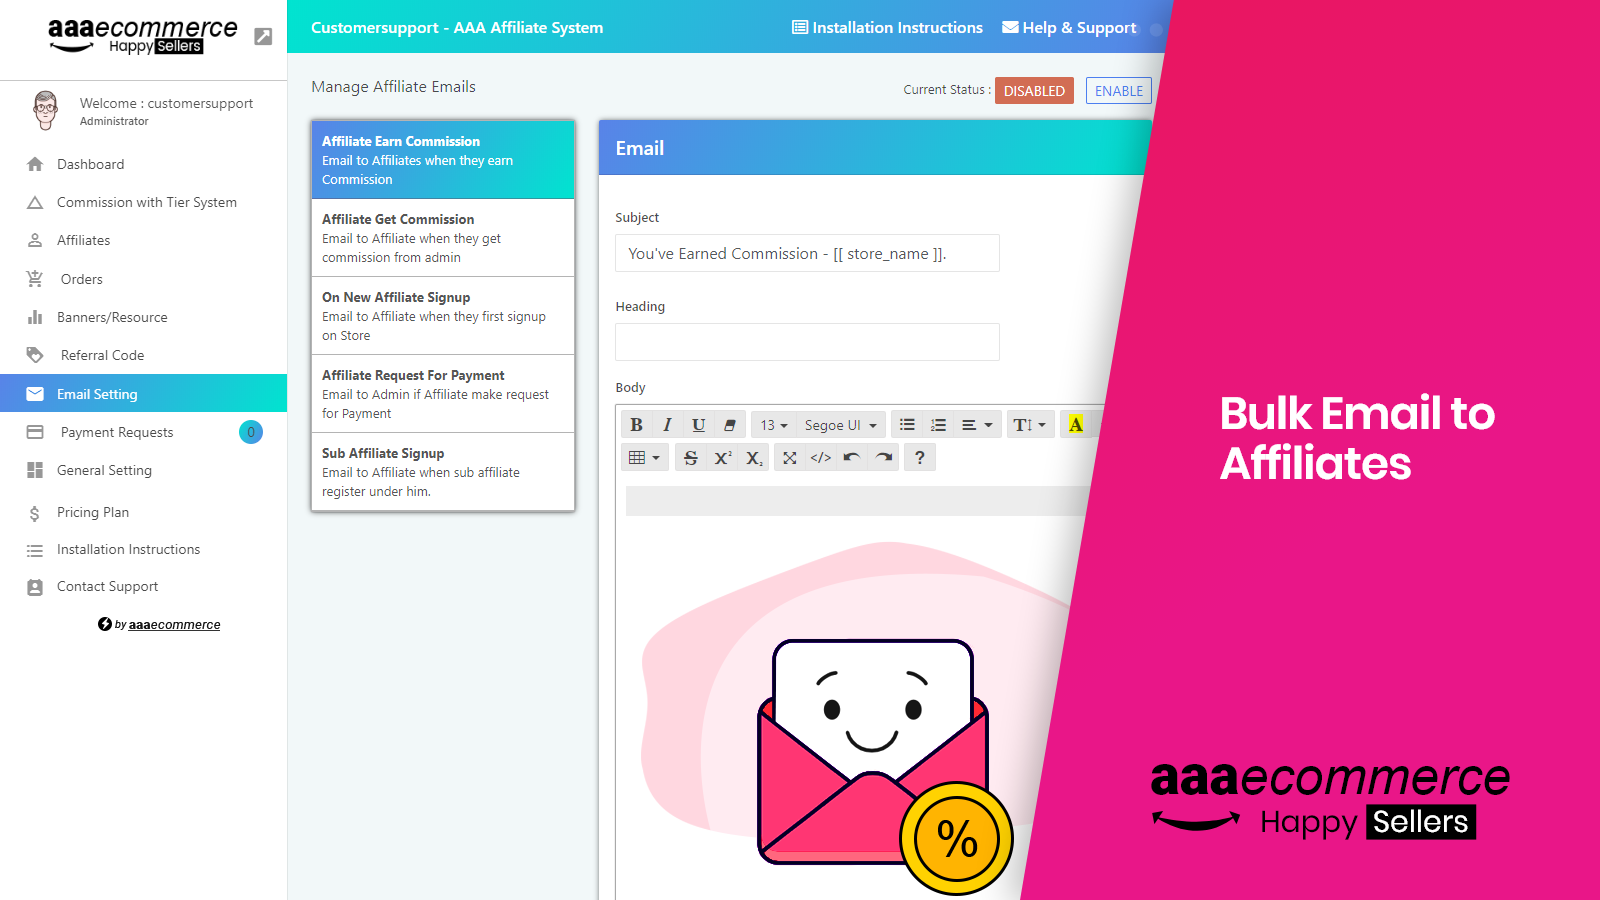 Email Marketing to Affiliates